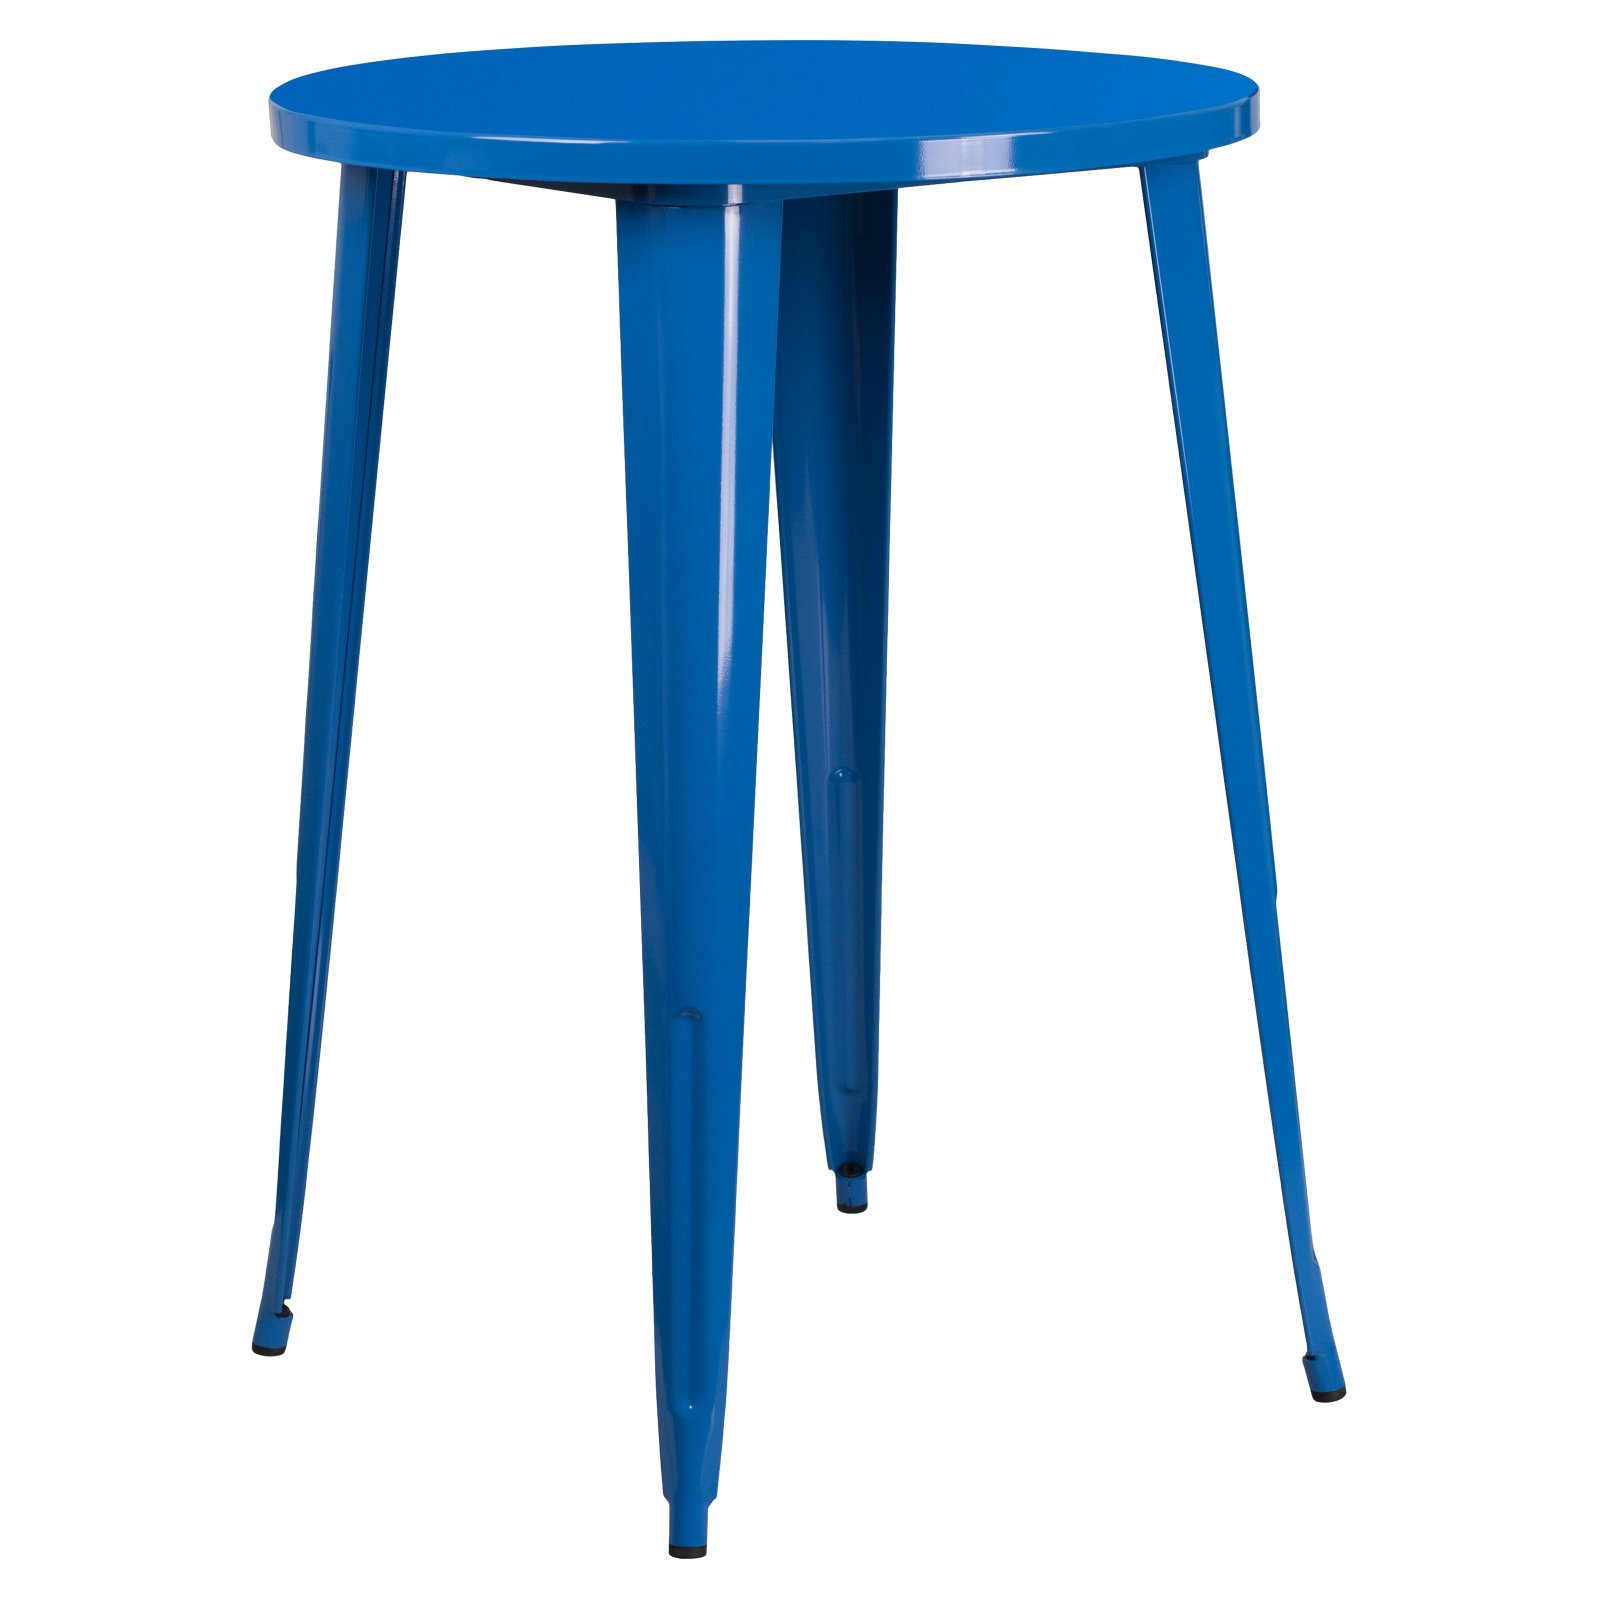 Basic 30'' Round Metal Indoor-Outdoor Bar Height Table with Protective Rubber Feet to Prevent Damage to Floors, Great for All Weather and Outdoor/Indoor Use, Blue + Expert Home Guide by Love US